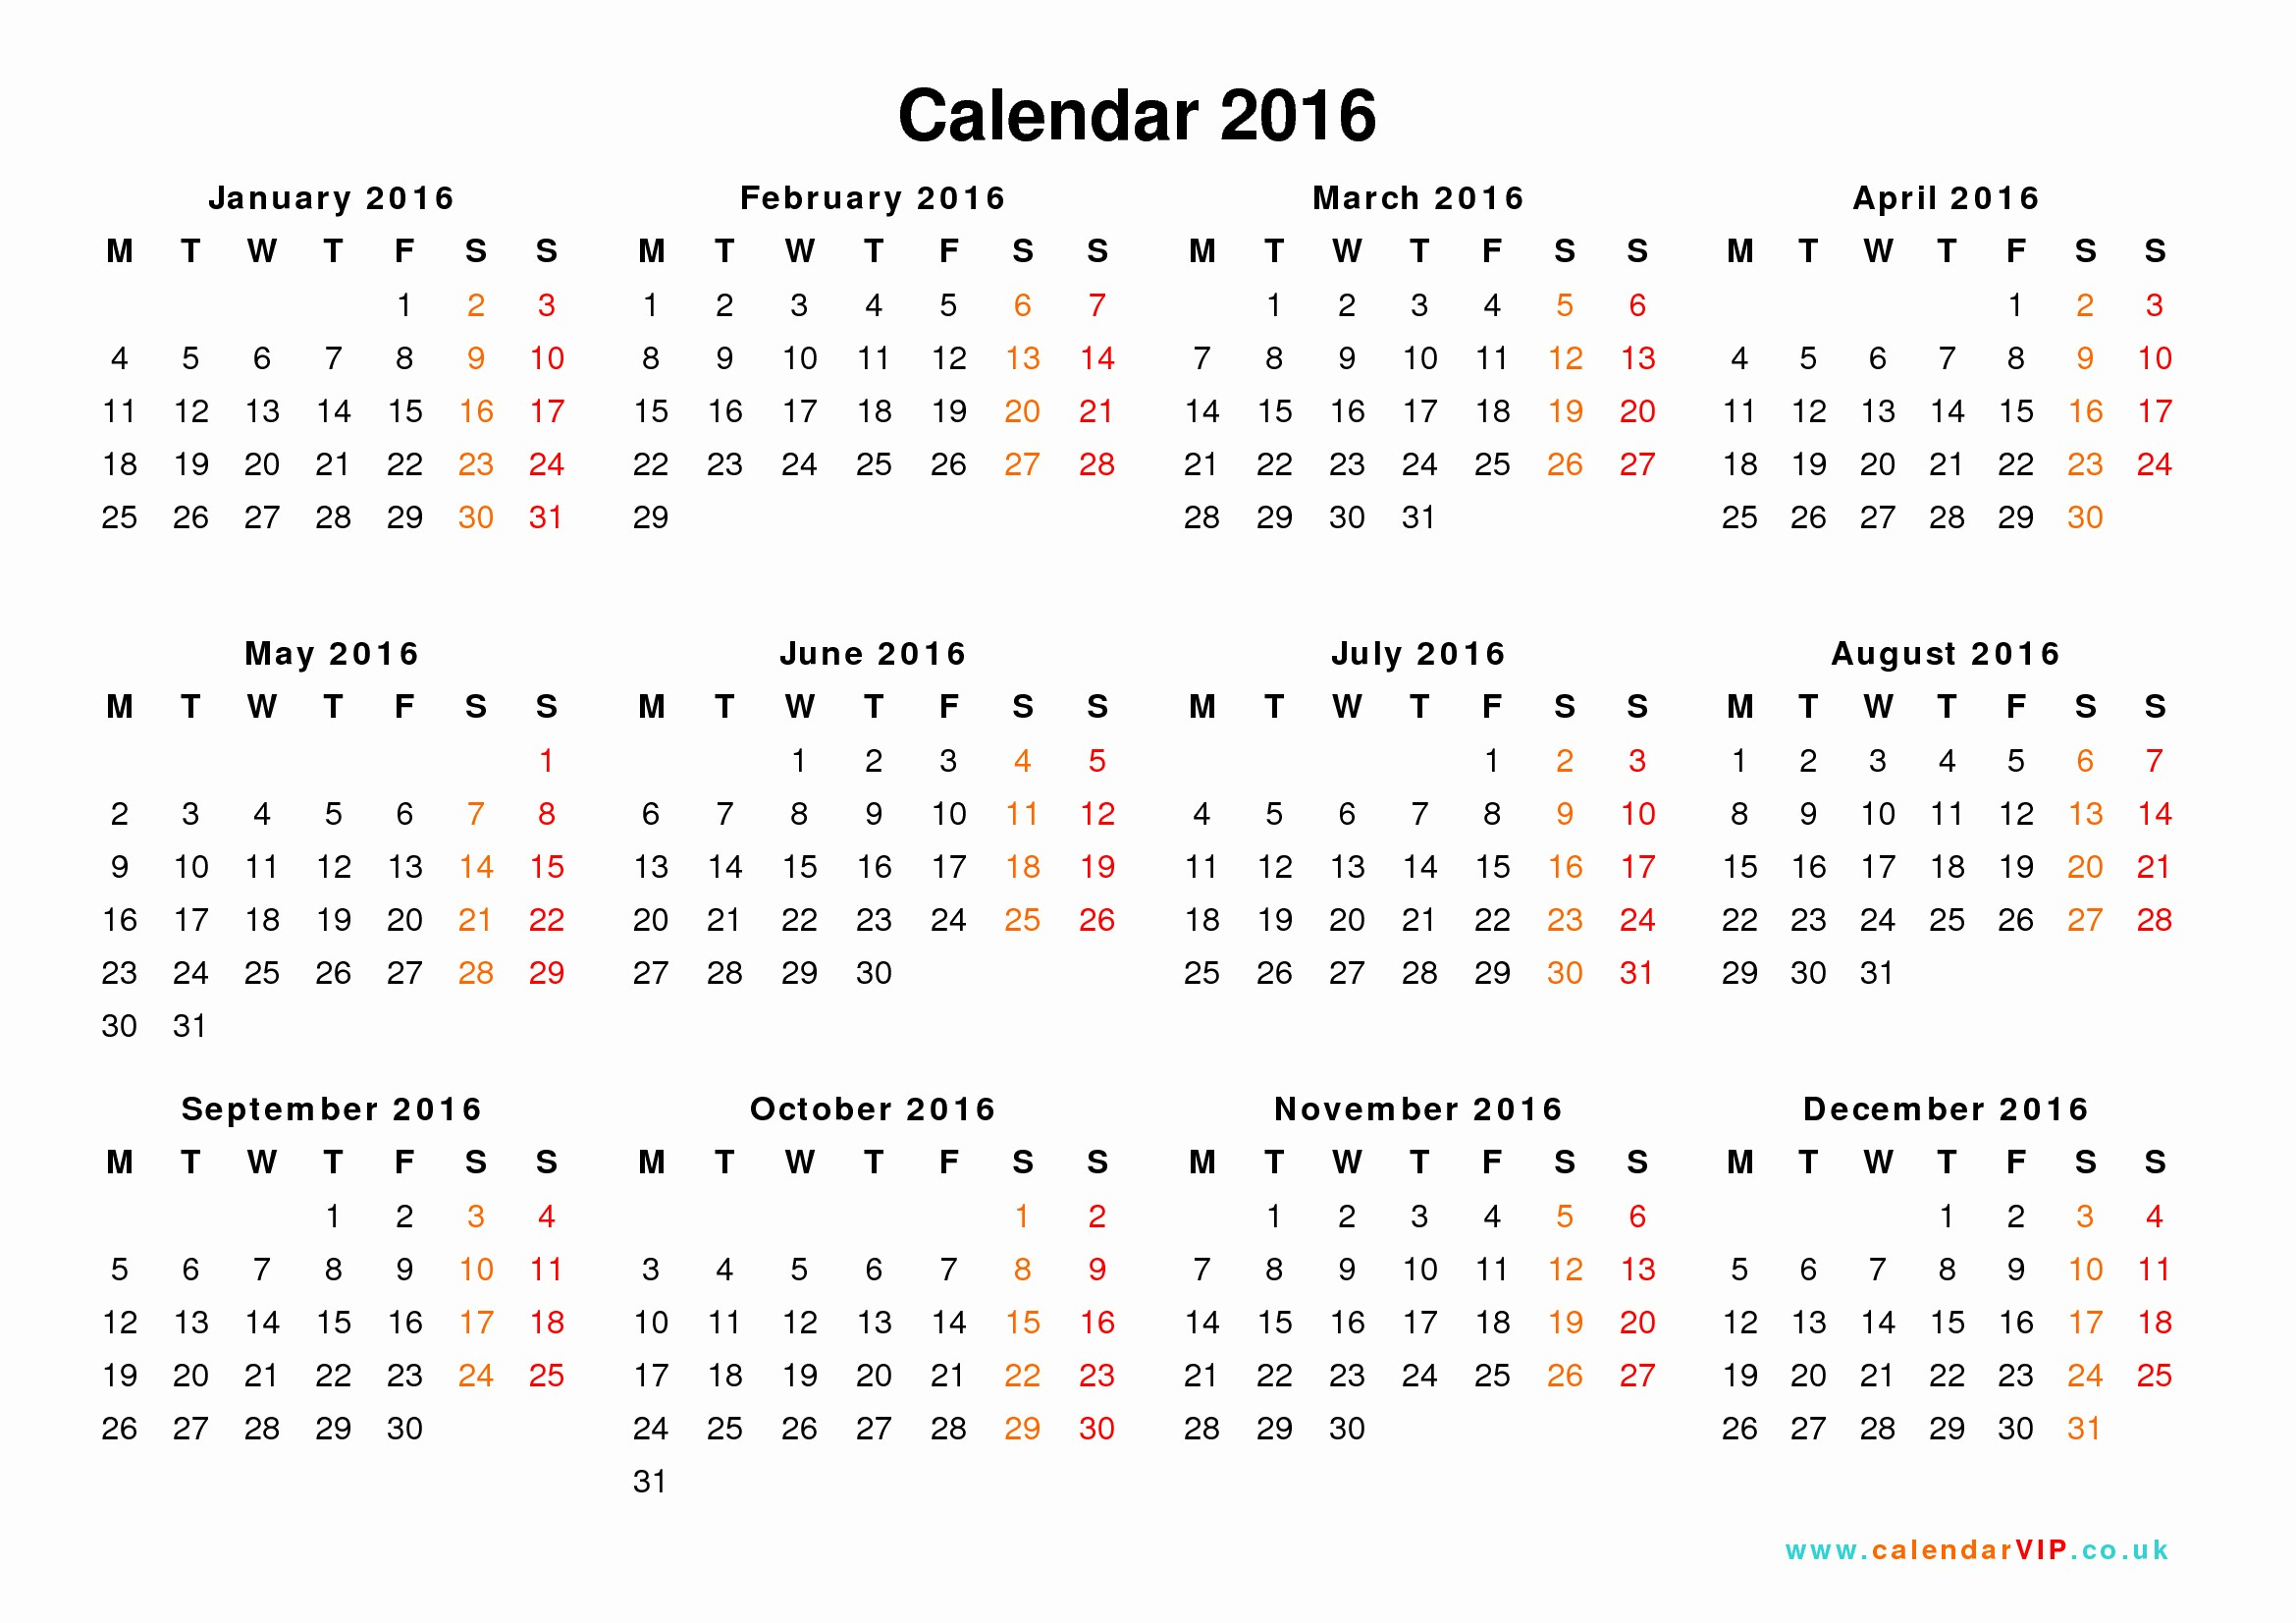 Calendar 2016 Printable with Holidays Best Of Download Calendar 2016 Printable